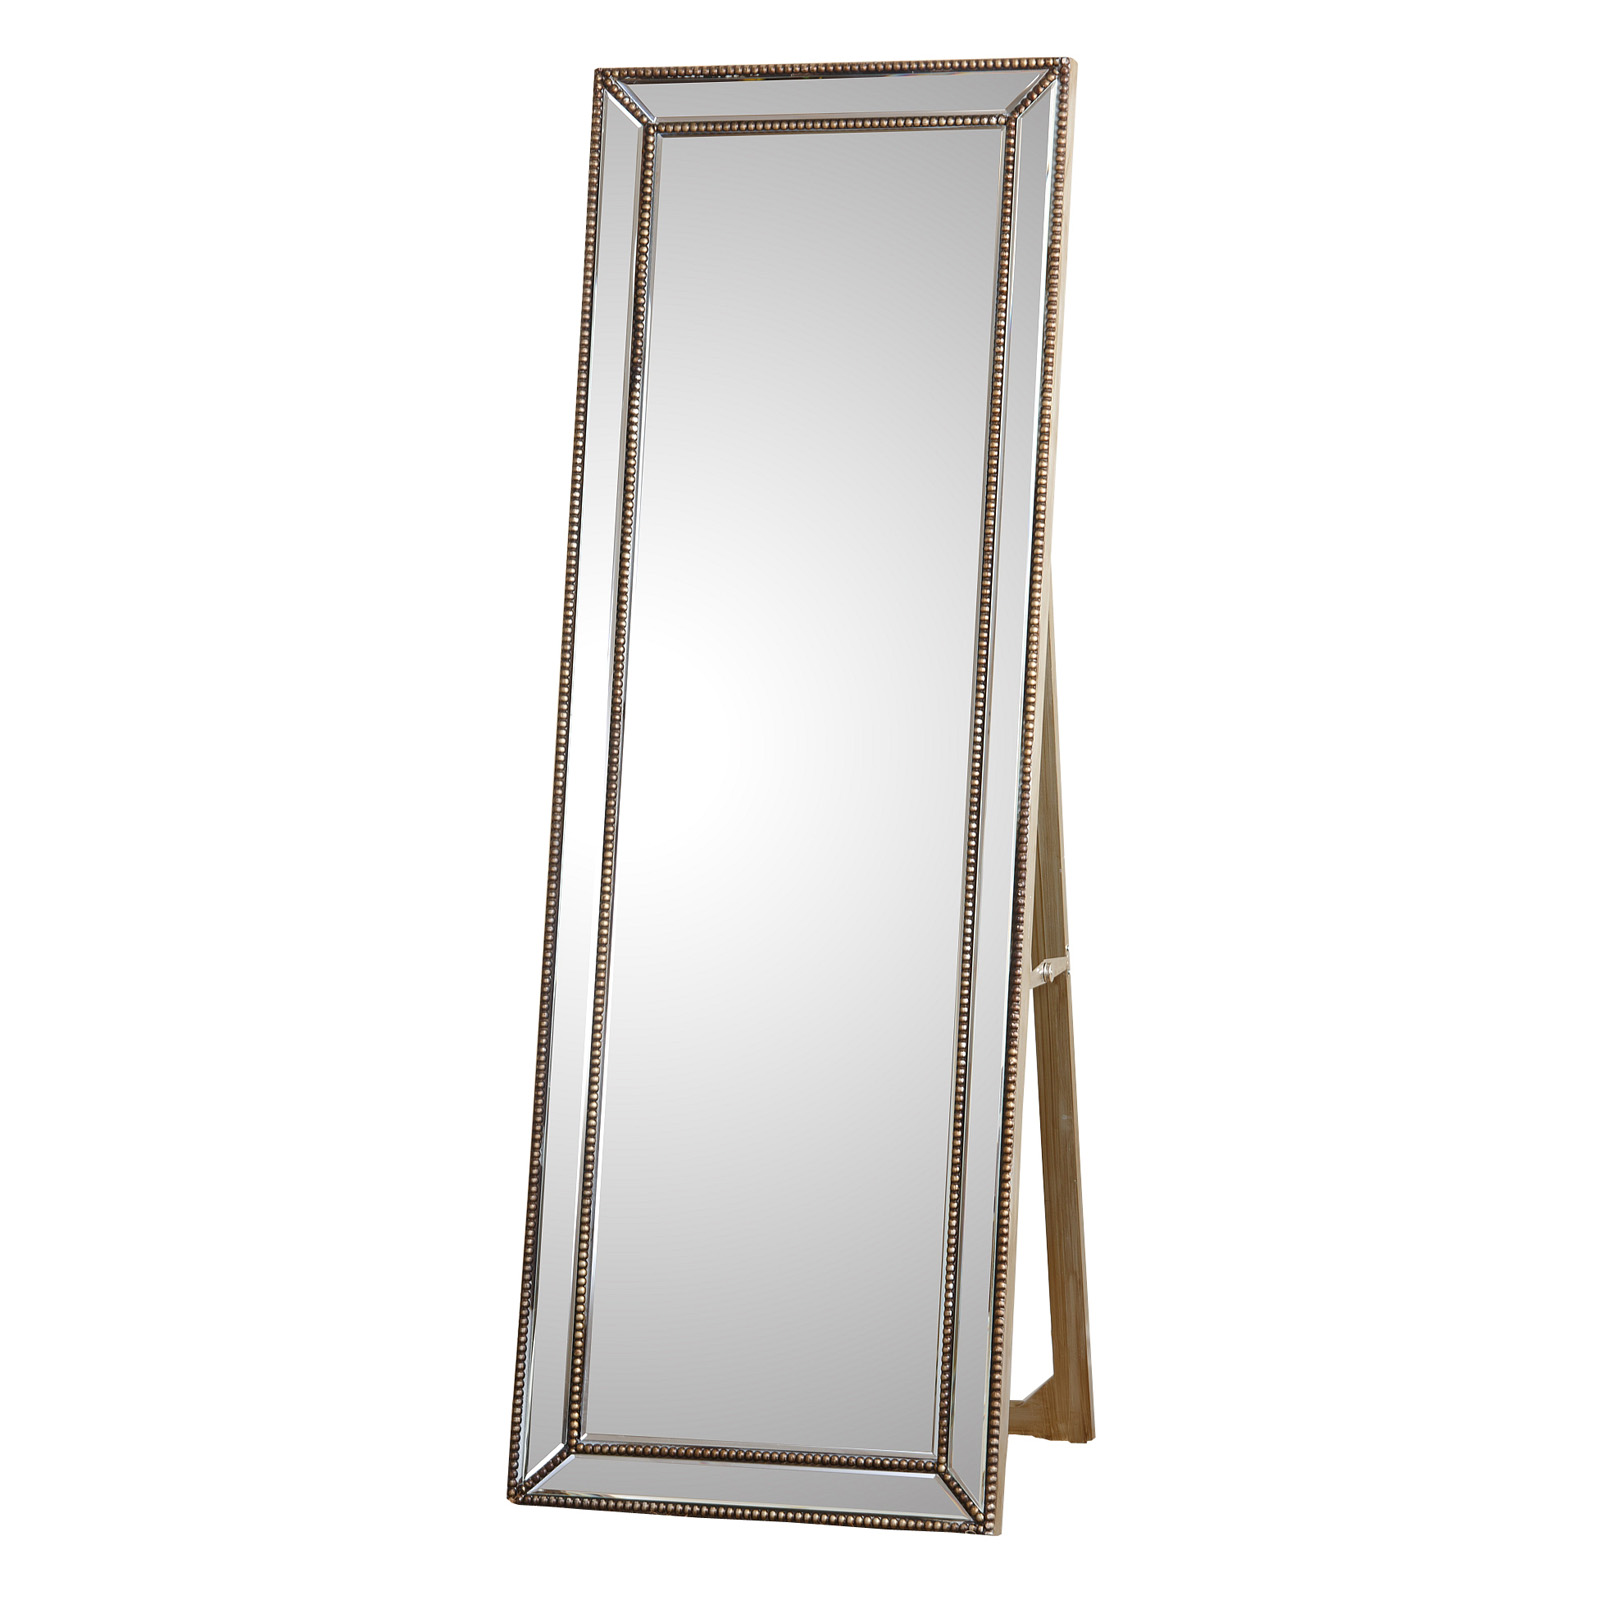 Cosmic Tarnished Gold Rectangle Cheval Floor Mirror | Hayneedle